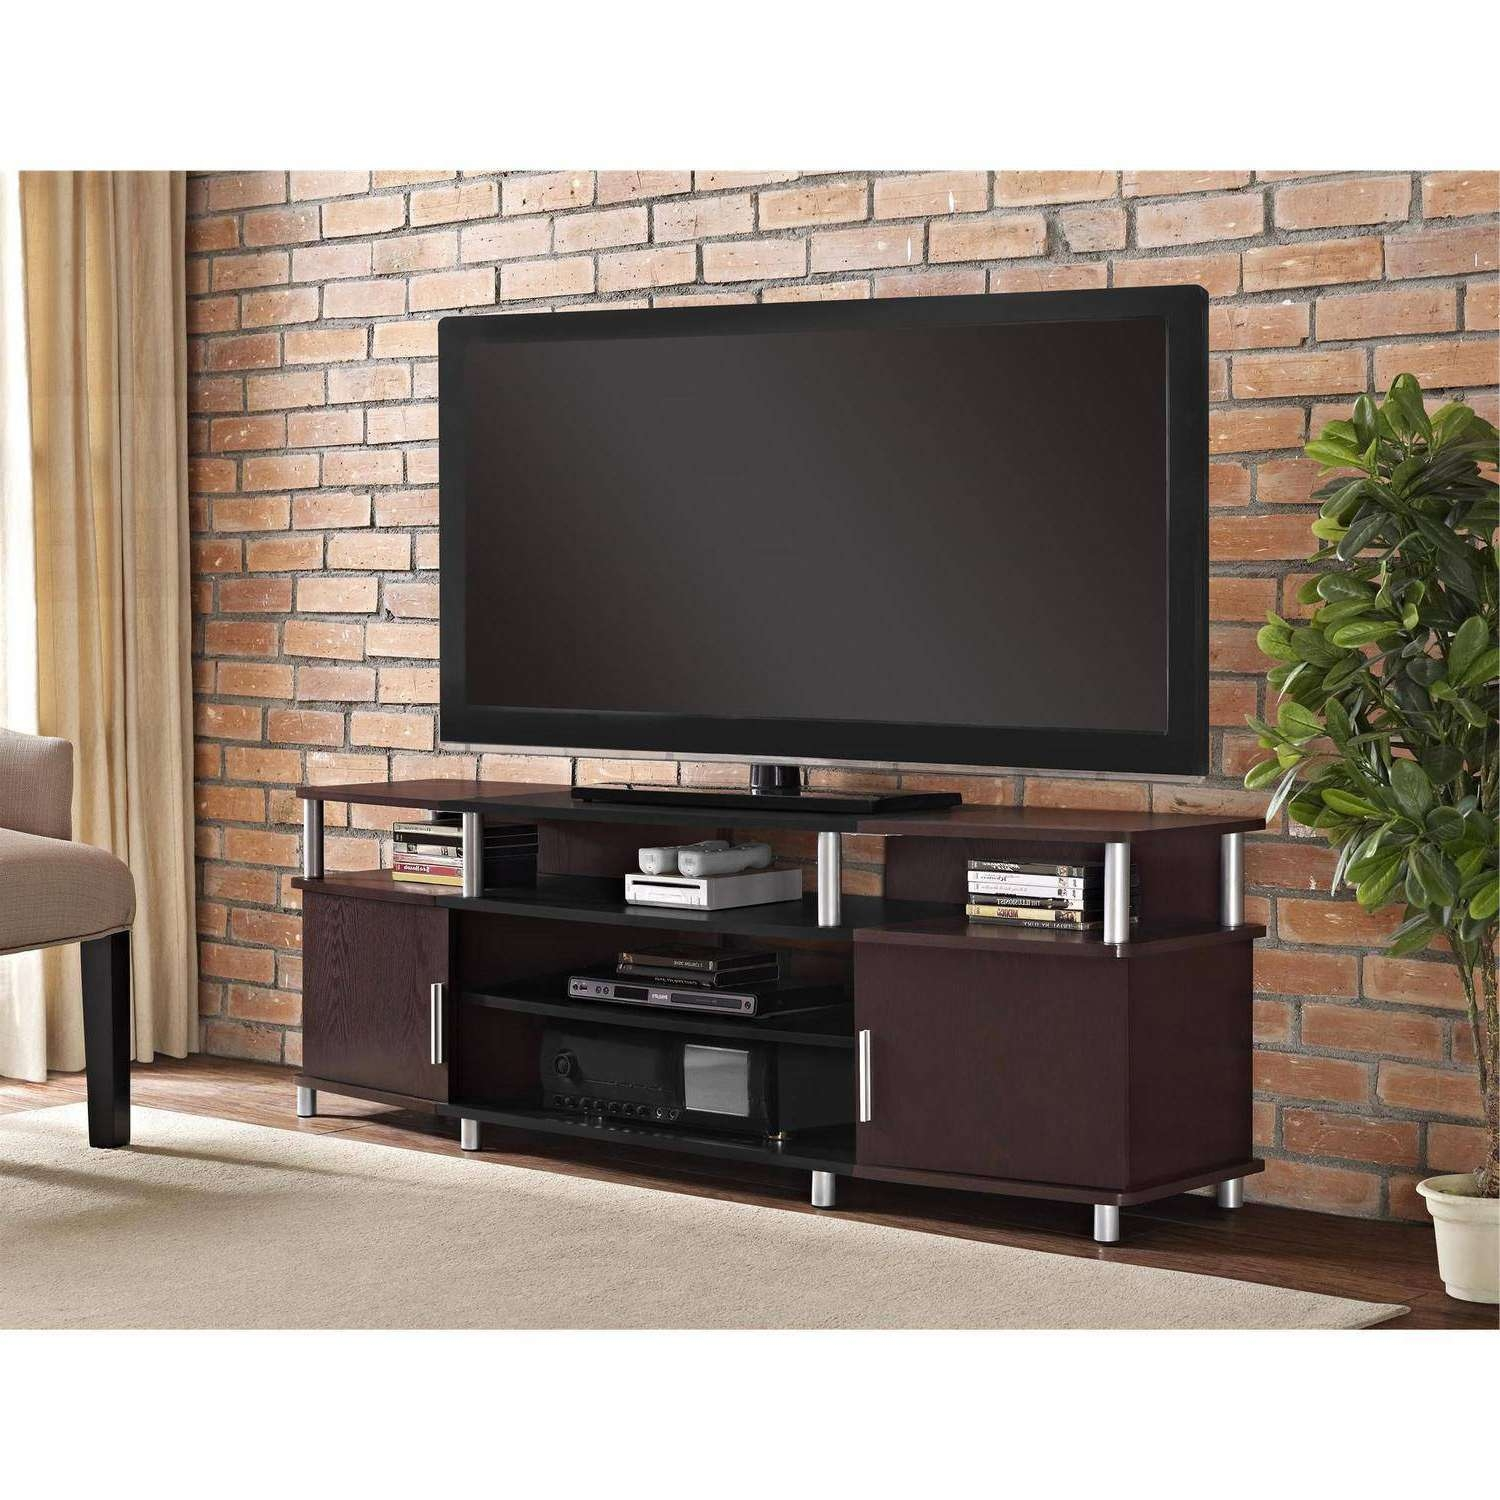 Tv Stands & Entertainment Centers – Walmart Within Black Tv Cabinets With Drawers (View 20 of 20)